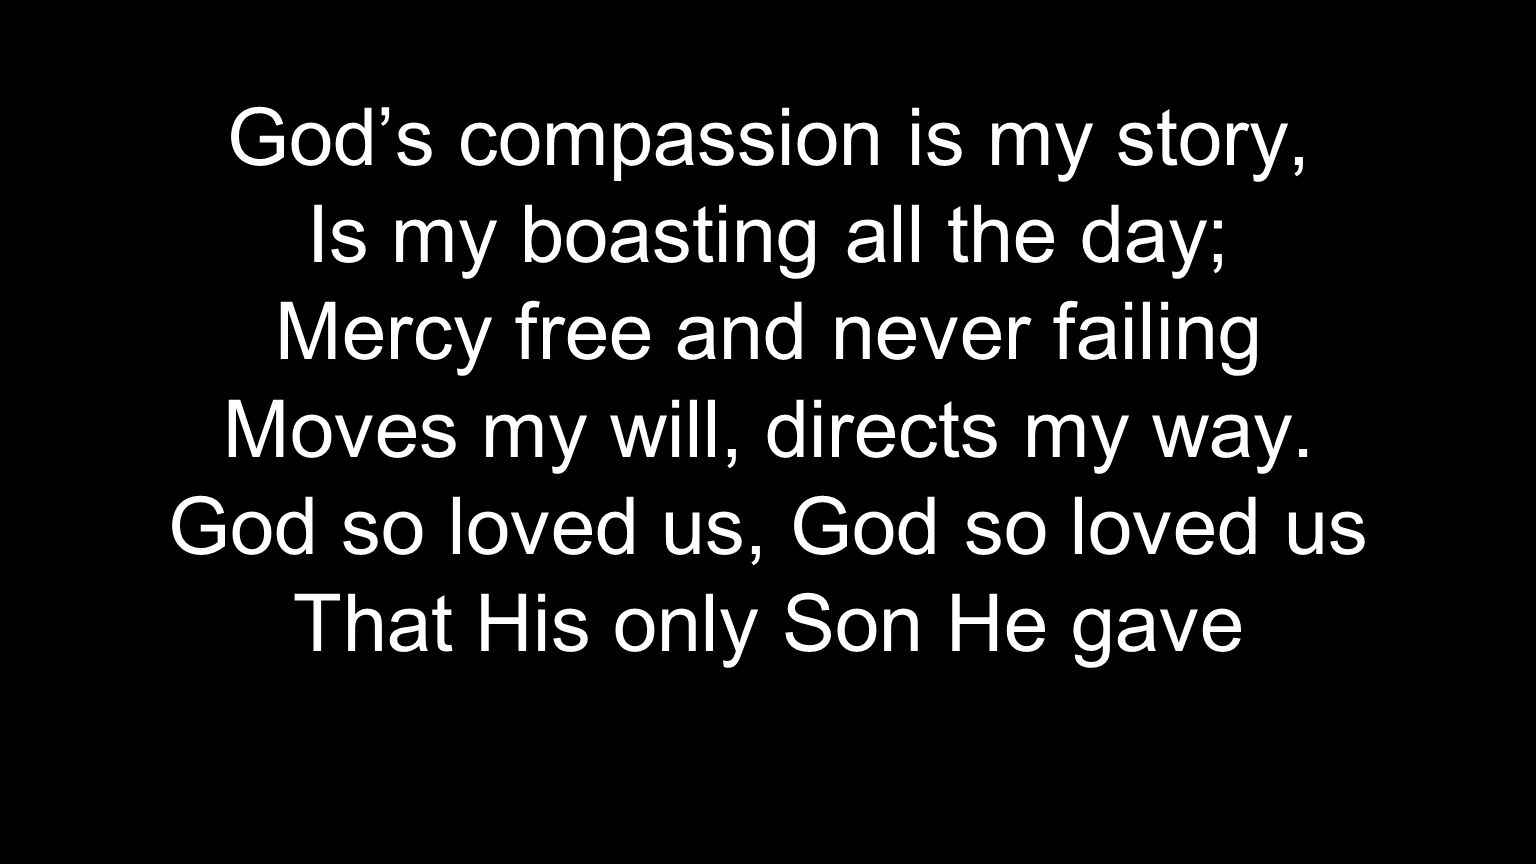 God's compassion is my story, Is my boasting all the day;